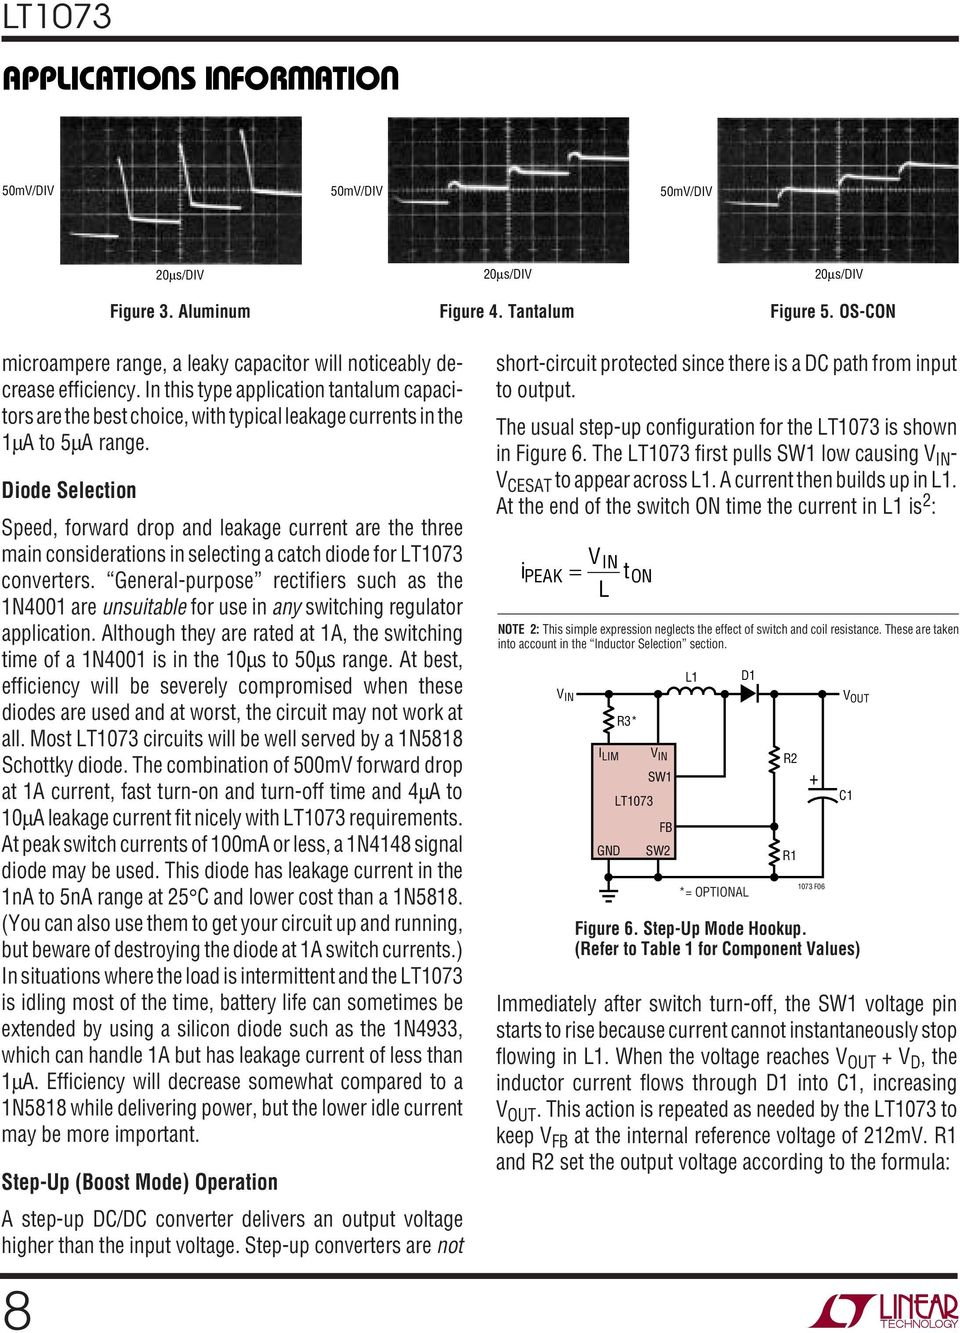 In this type application tantalum capacitors are the best choice, with typical leakage currents in the 1µA to 5µA range.